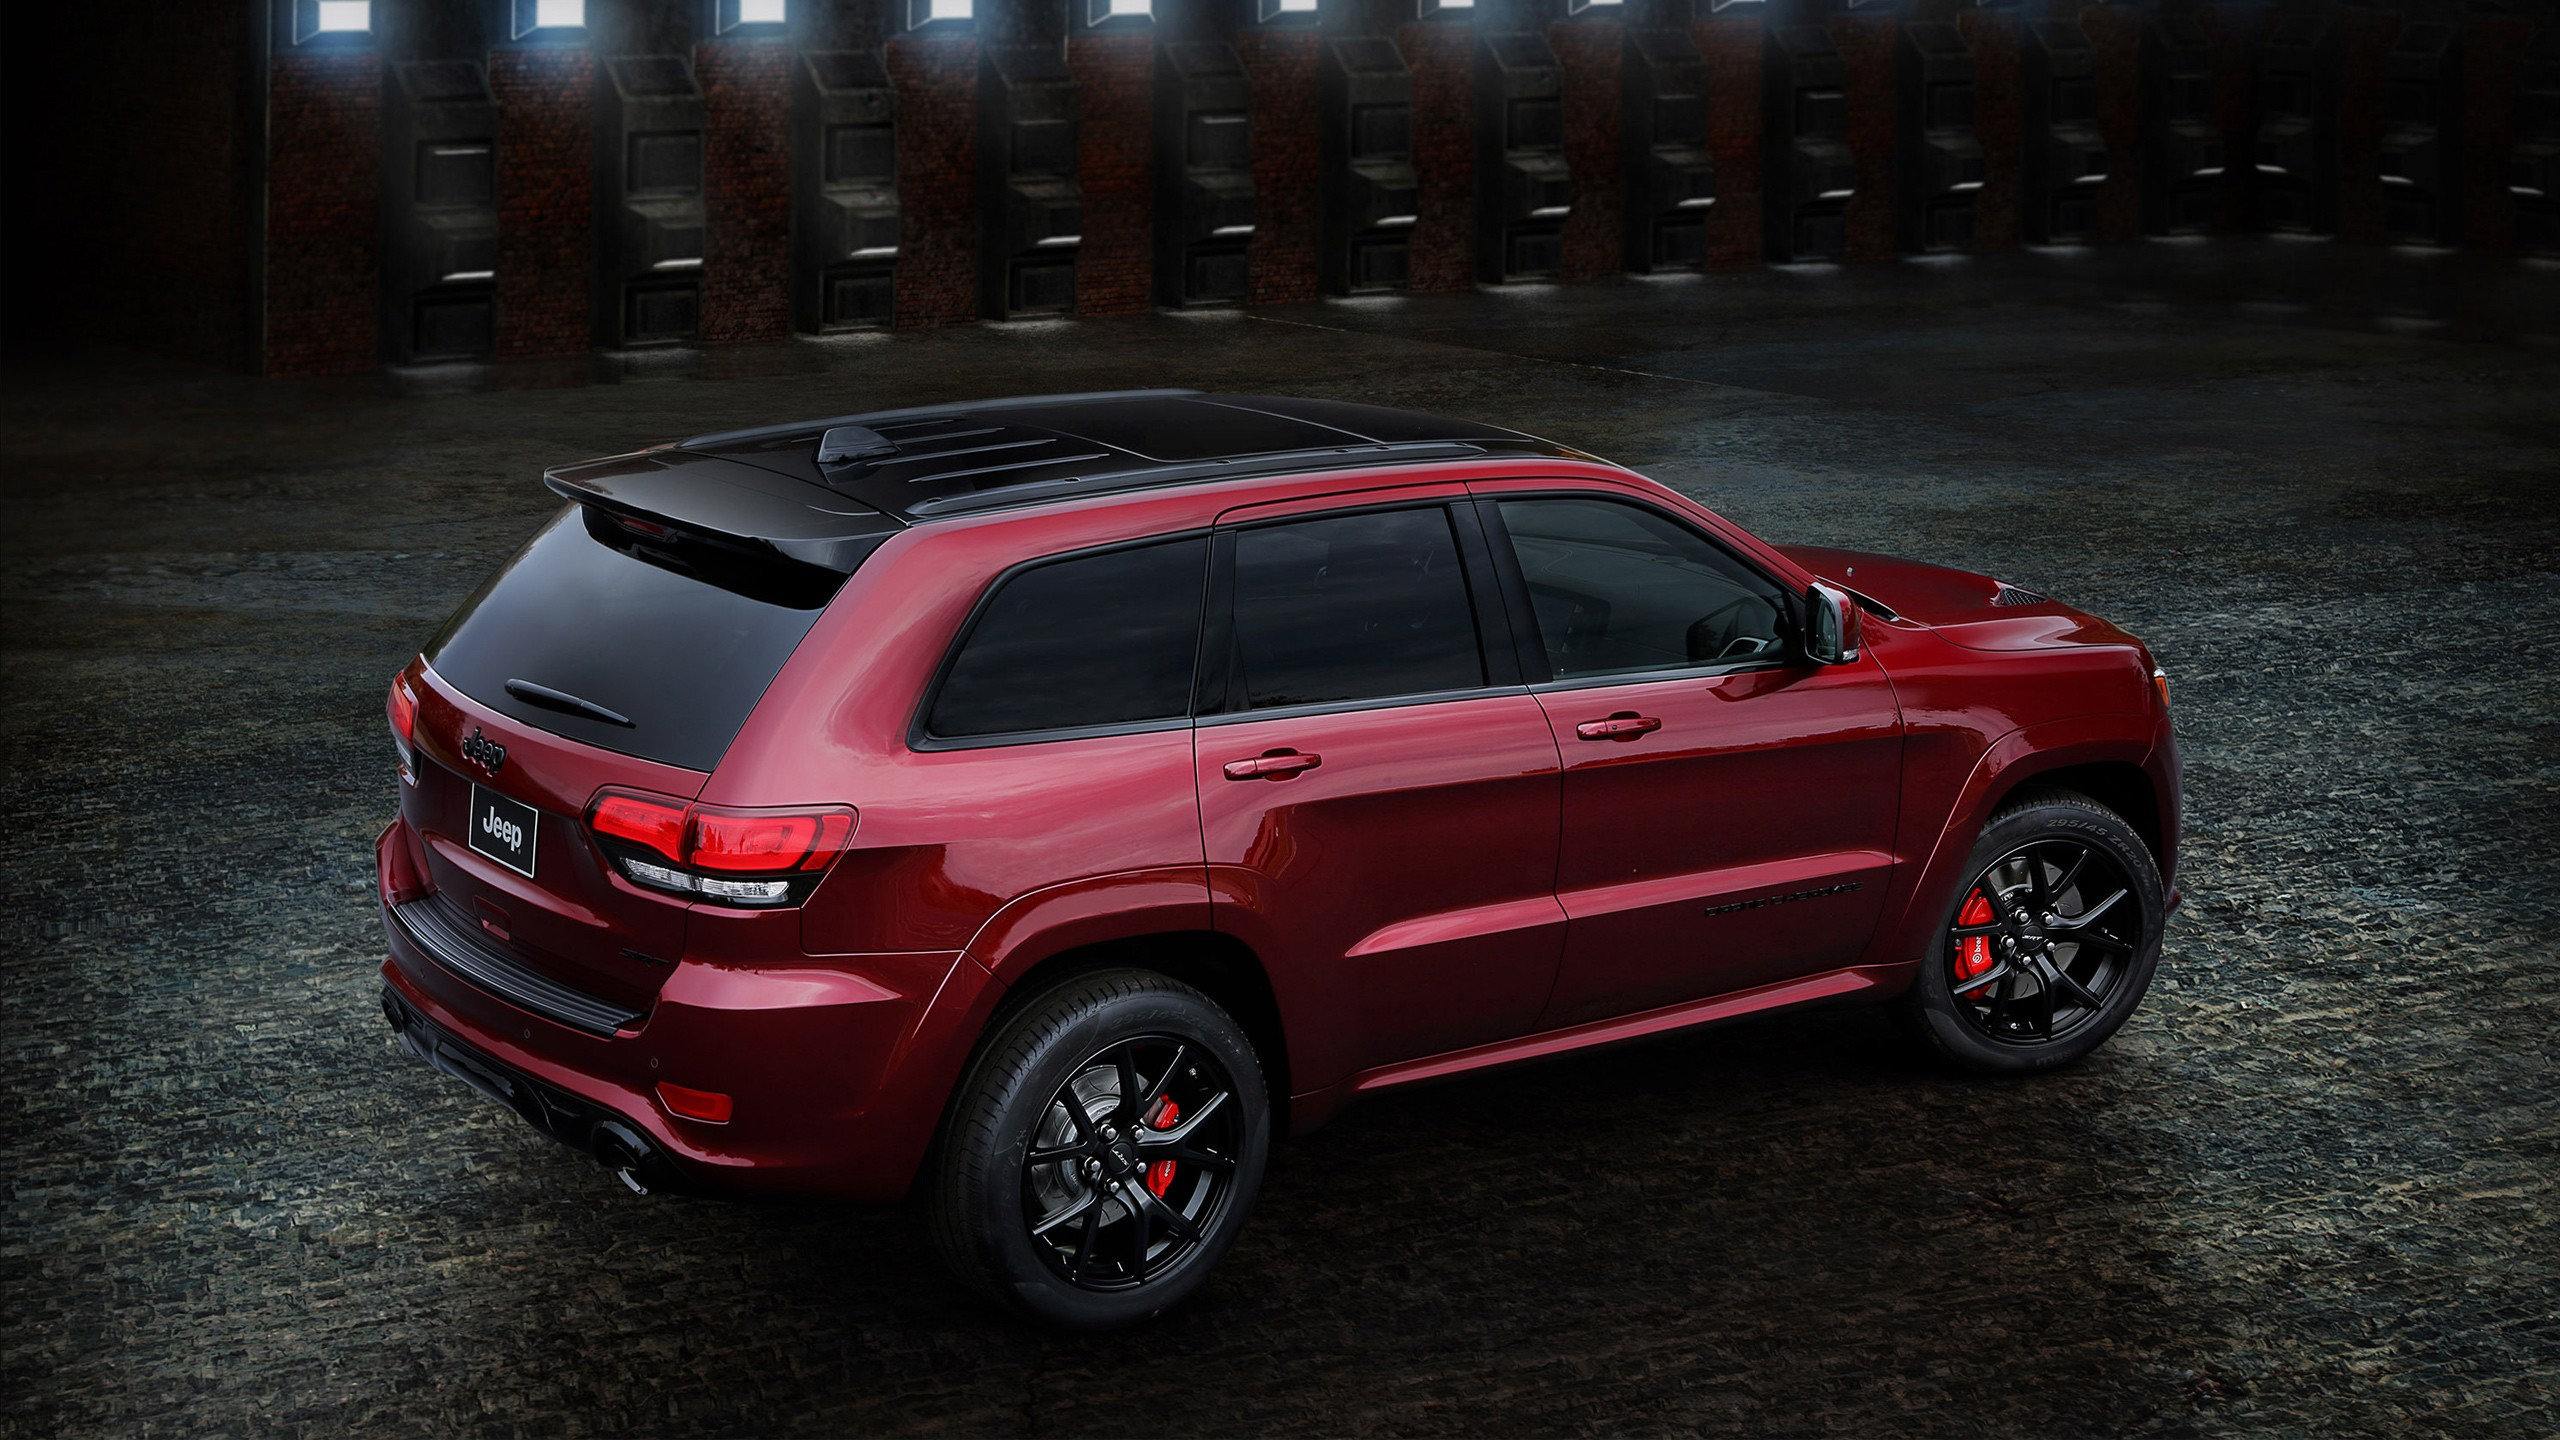 jeep cherokee grand srt wallpapers hd night wrangler backcountry hdcarwallpapers 2560 1440 resolutions 1280